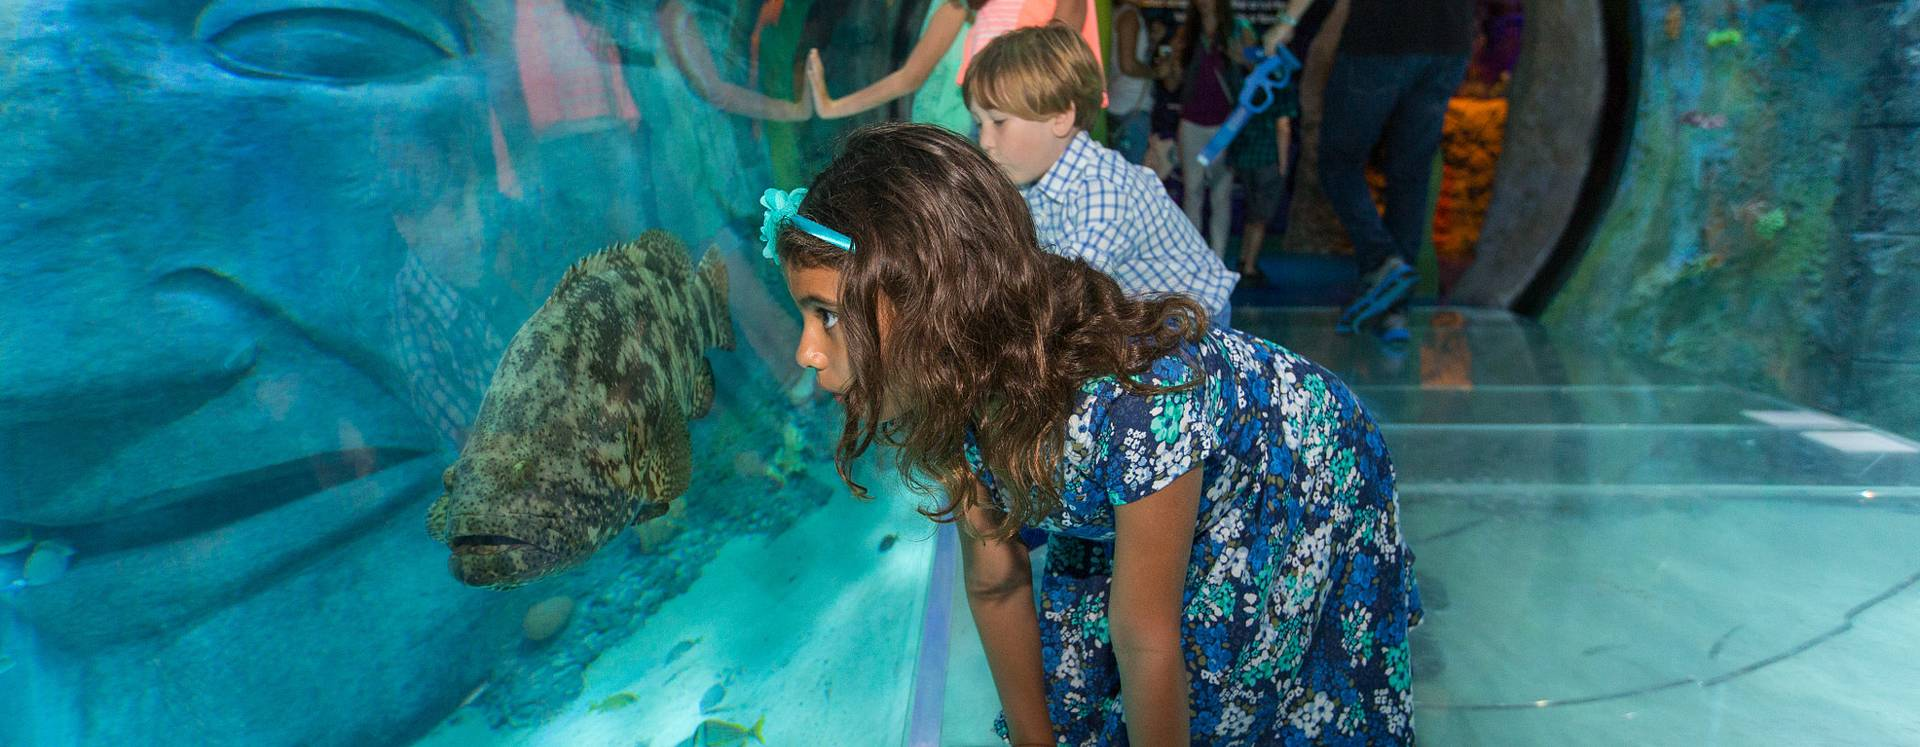 A girl crouching and looking at a fish, while in the tunnel of SEA LIFE Orlando Aquarium